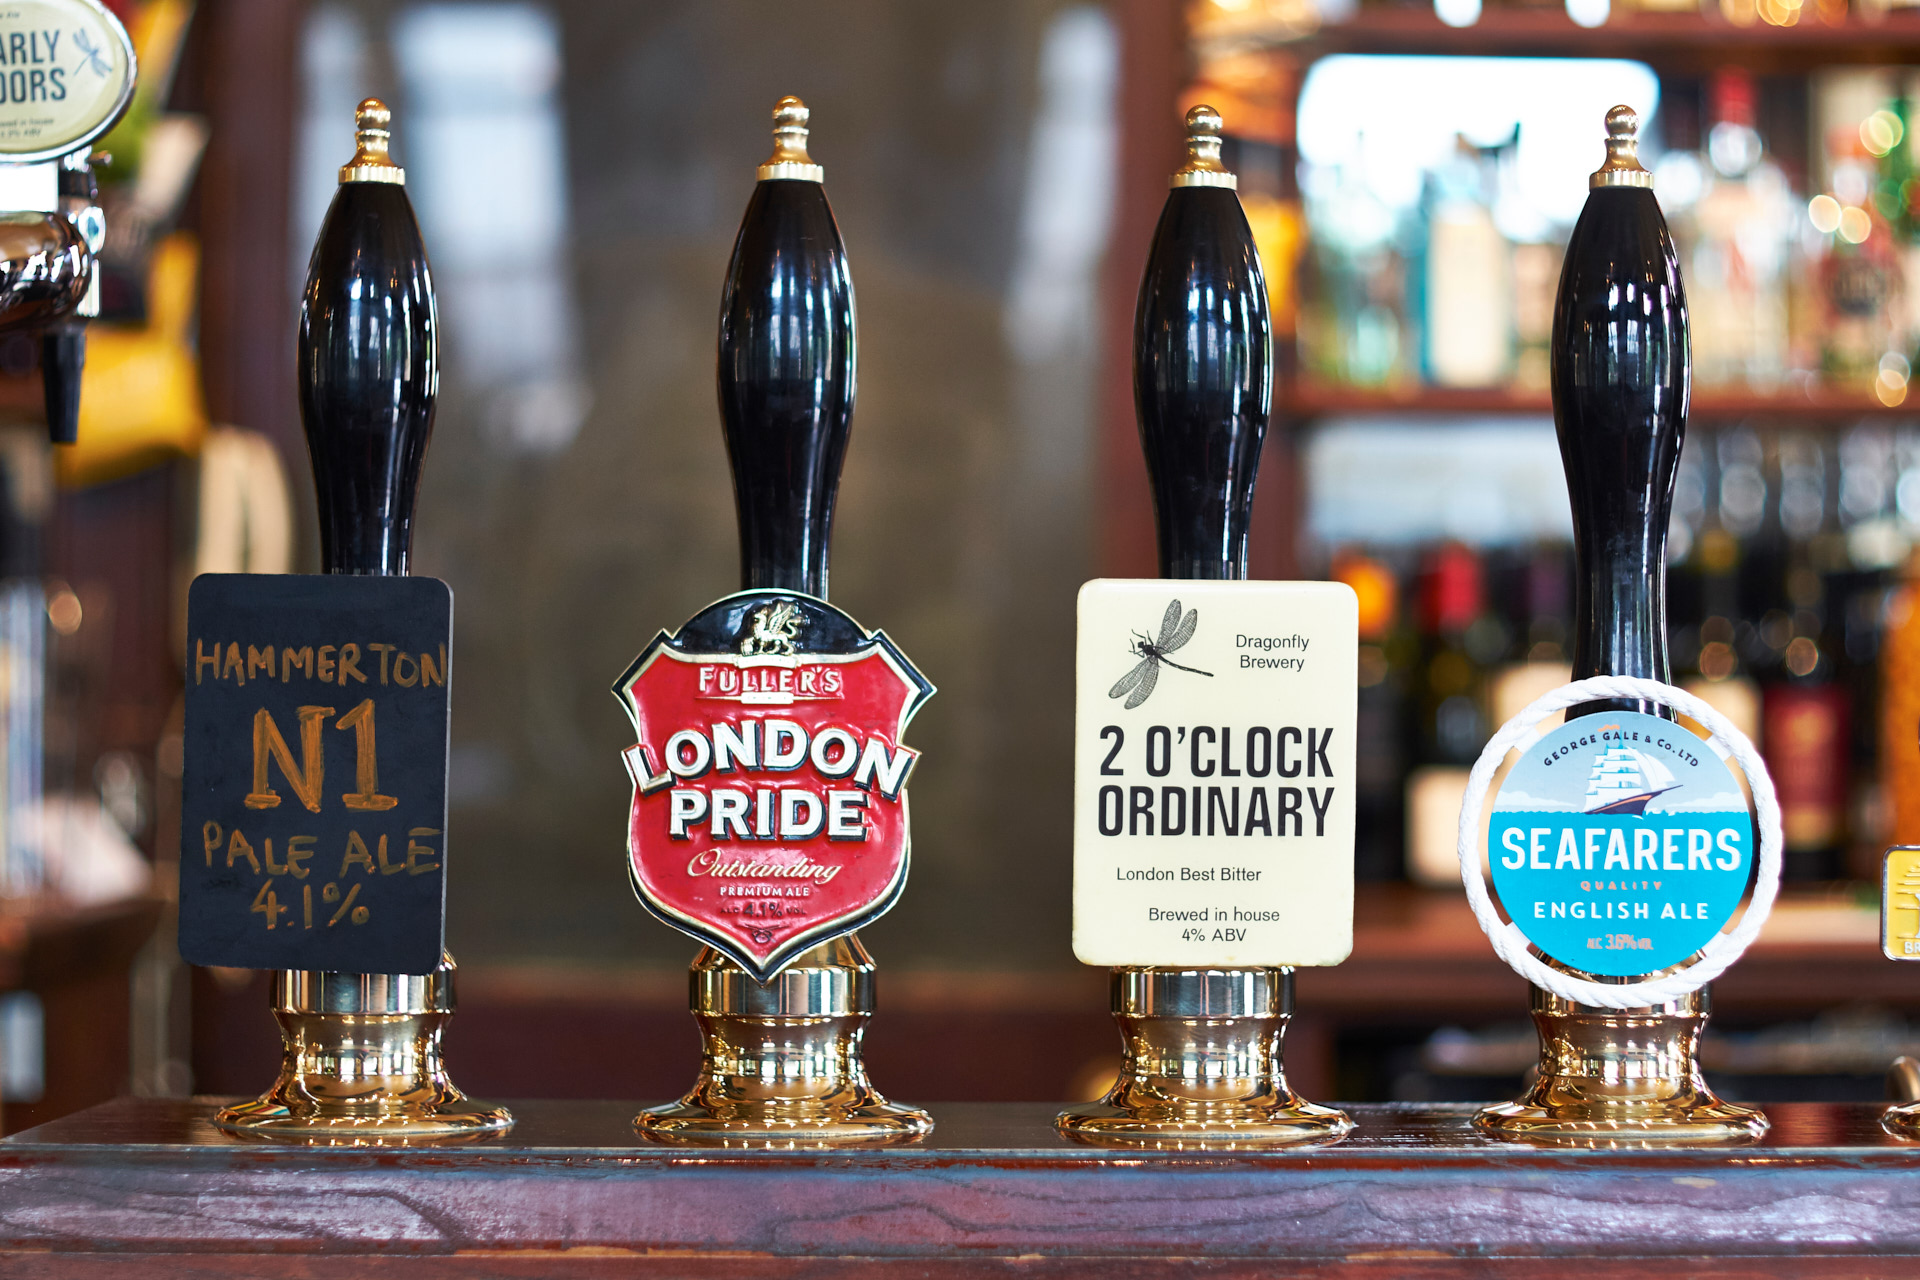 A fine selection of Cask Ales.